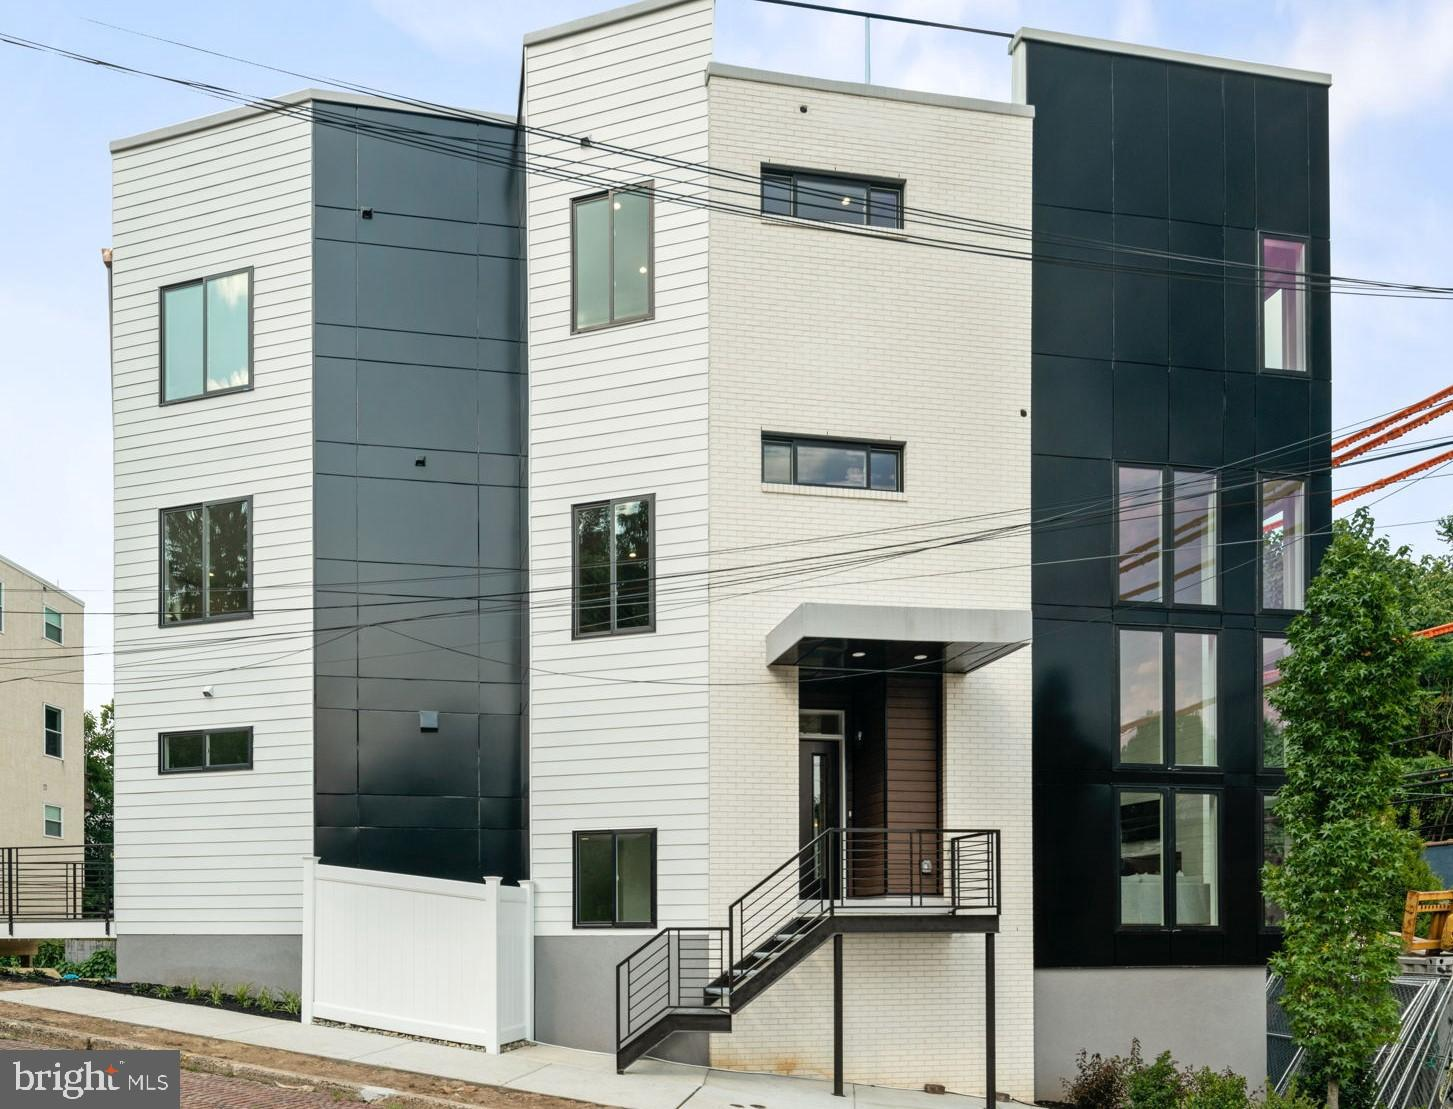 Welcome to 4803 Silverwood - boasting over 4,200 square feet, 3 car parking, a two-story family room, and one of the largest roof decks you will find in Manayunk! This single-family new construction home features 4 spacious bedrooms, 3.5 bathrooms, a second living room on the 3rd floor, patio off the living level, and comes with 10-year tax abatement and 1-year builder warranty. The first floor features a flex space that can be used as an office, workout room, or storage room. Complete with closet storage and mechanicalroom. Garage entry to first floor - garage fits two-car tandemparking and 1 car parking in the driveway. Additional area in garage for more storage. As you enter the front door, a large coat closet fits your guest's need who will be wowed by your spacious open-concept kitchen, dining, and two-story family room which will not disappointyou! The chef's kitchen features high-end appliances, hood over Viking 6 burning range with pot filler, custom kitchen cabinets, double thick quartz countertop on the island with large stainless steel oversized sink, and wall oven and microwave. The double door pantry is spacious for all of your kitchen storage needs. You will pass the large half bathroom on your way out to your outdoor patio, perfect for grilling and enjoying the outdoors. The two-story family room is truly thehighlight of this home. With floor-to-ceiling shiplap fireplace, stunning windows, and a custom built-in wet bar - perfect for entertaining. Upstairs you will find a second living area that overlooks the living room, two spacious bedrooms with double door closets, alarge full bathroom with double vanity sinks, and complete withthe laundry room. Continue up to the owners living level and 3rd guest bedroom and full bathroom and walk-in shower. The owner suite will blow you away with how large it is and oversize walk in closet with custom organizers. The on-suite bathroom features HEATED FLOORS, a gorgeousblack tub, double vanity, and walk in shower 